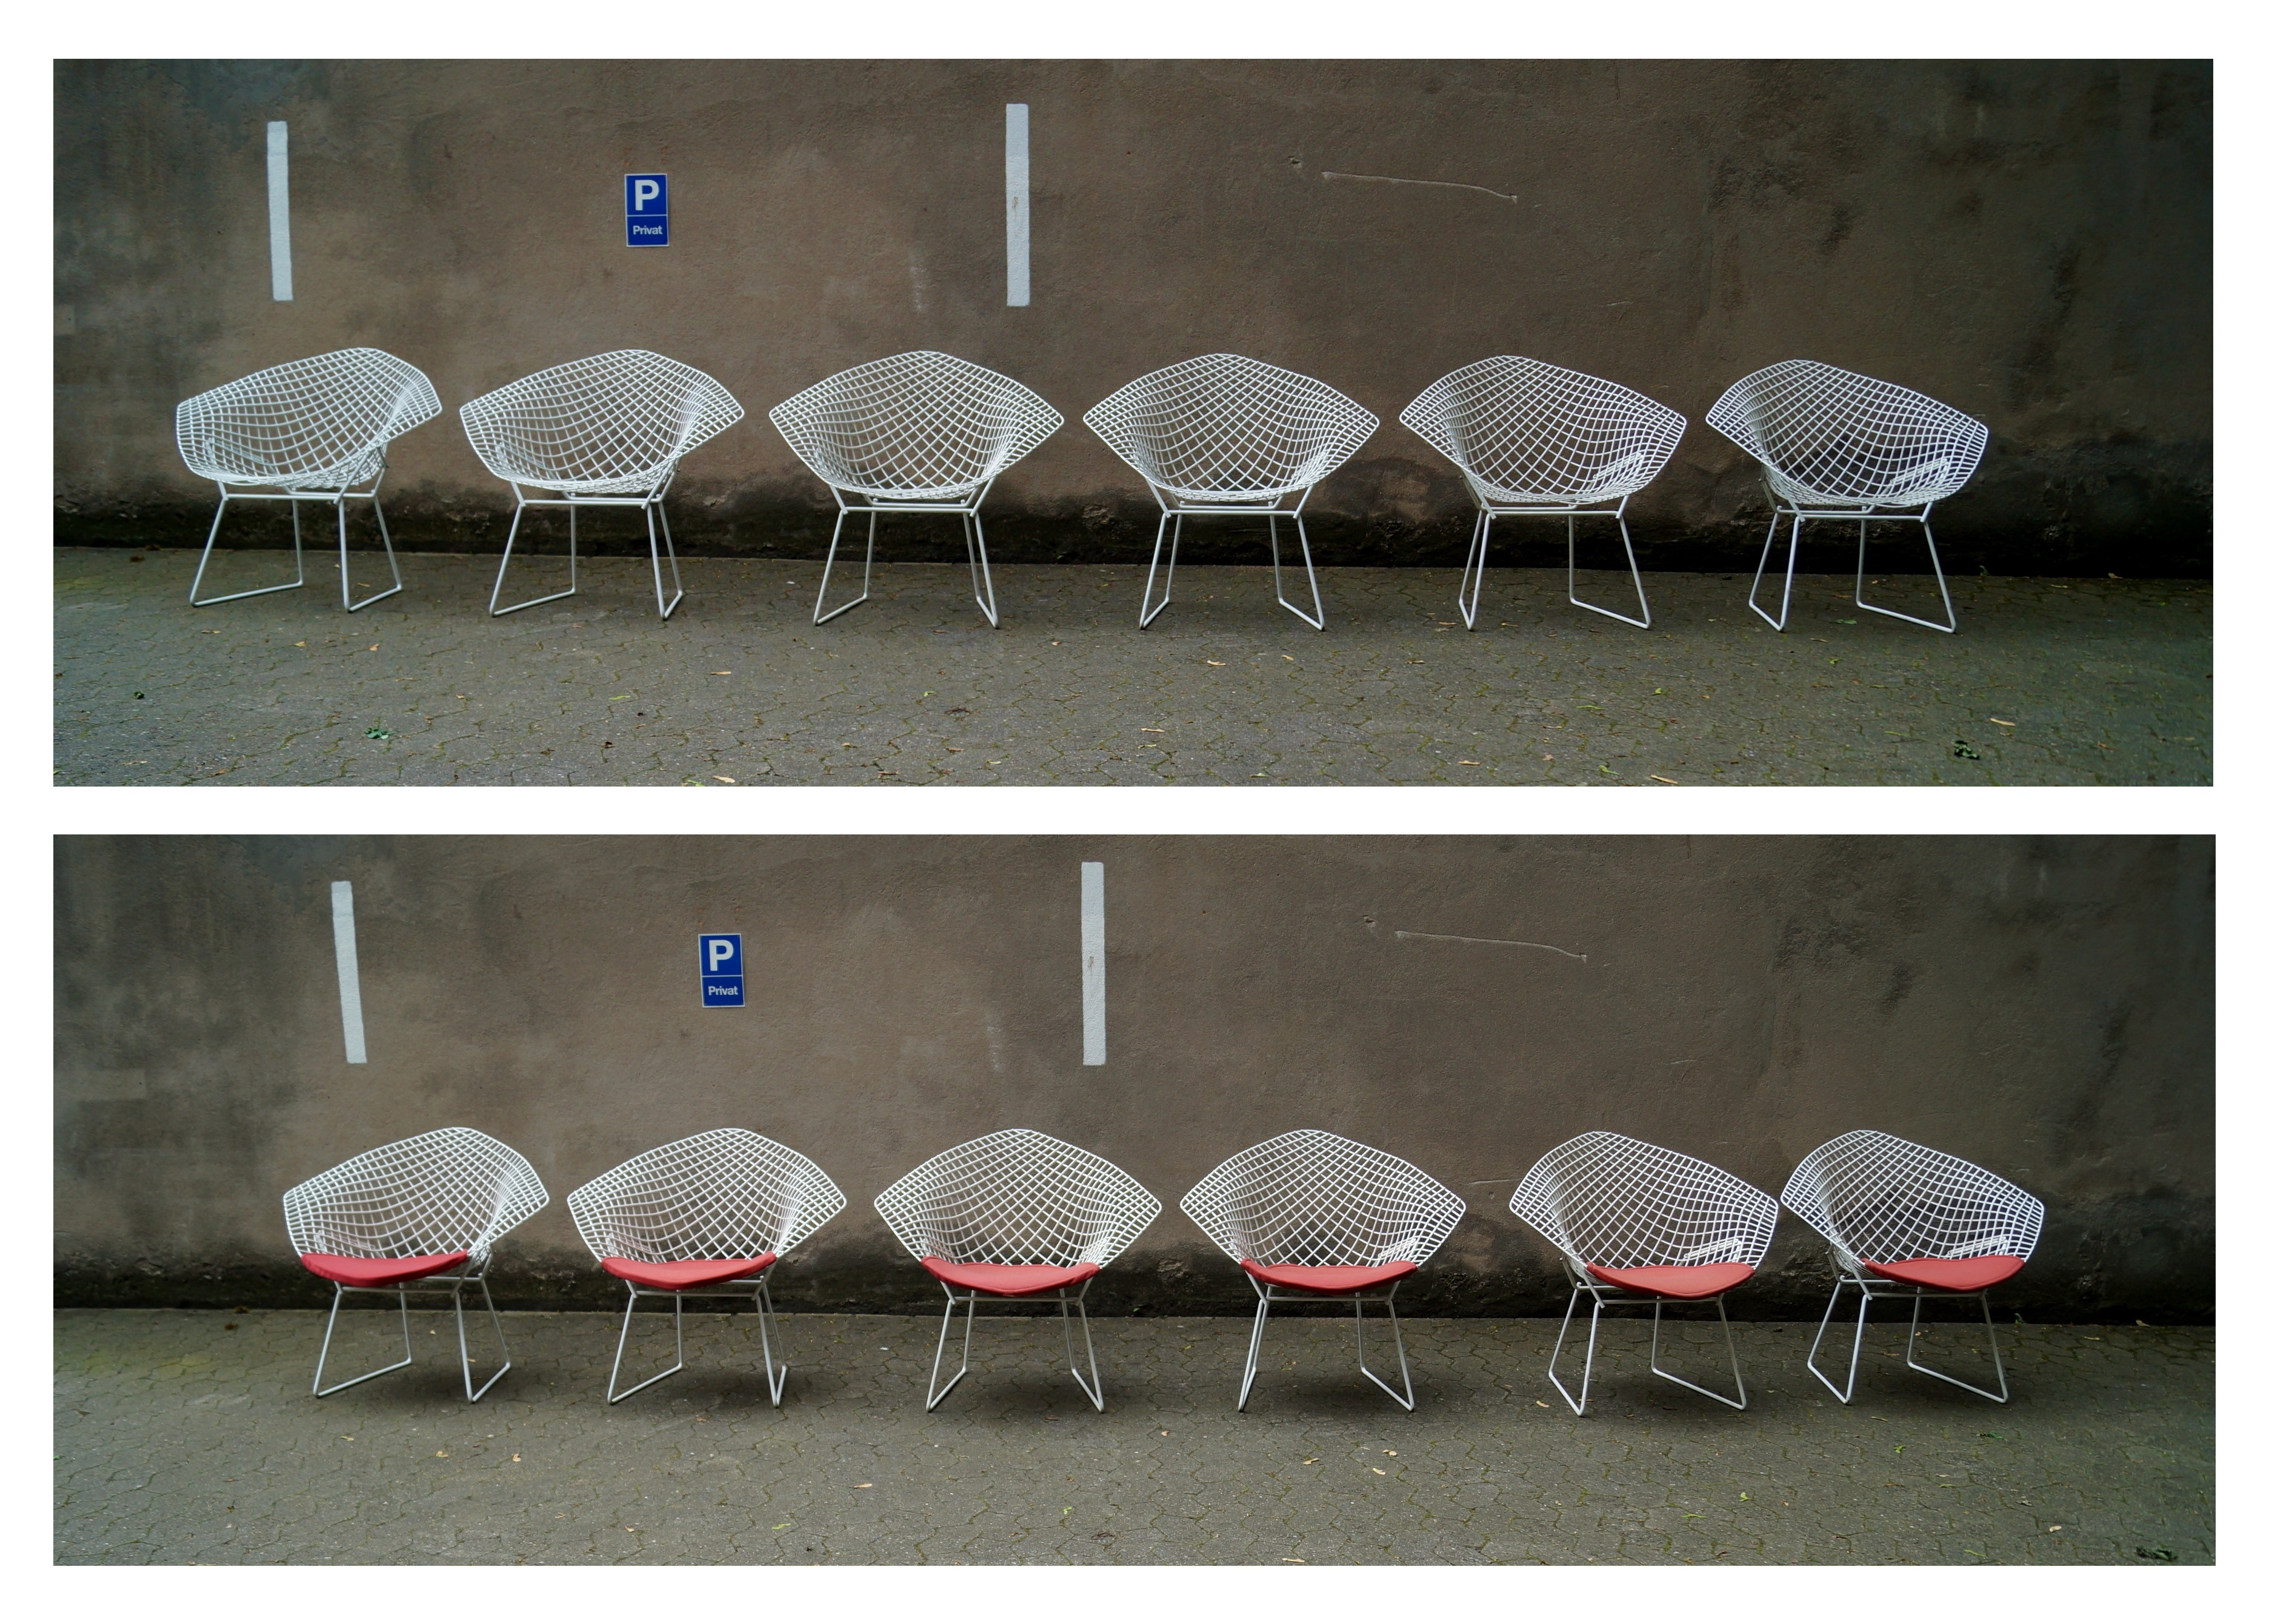 Diamond Sessel Flex Mid Century Vintage Design Nürnberg Diamond Chairs By